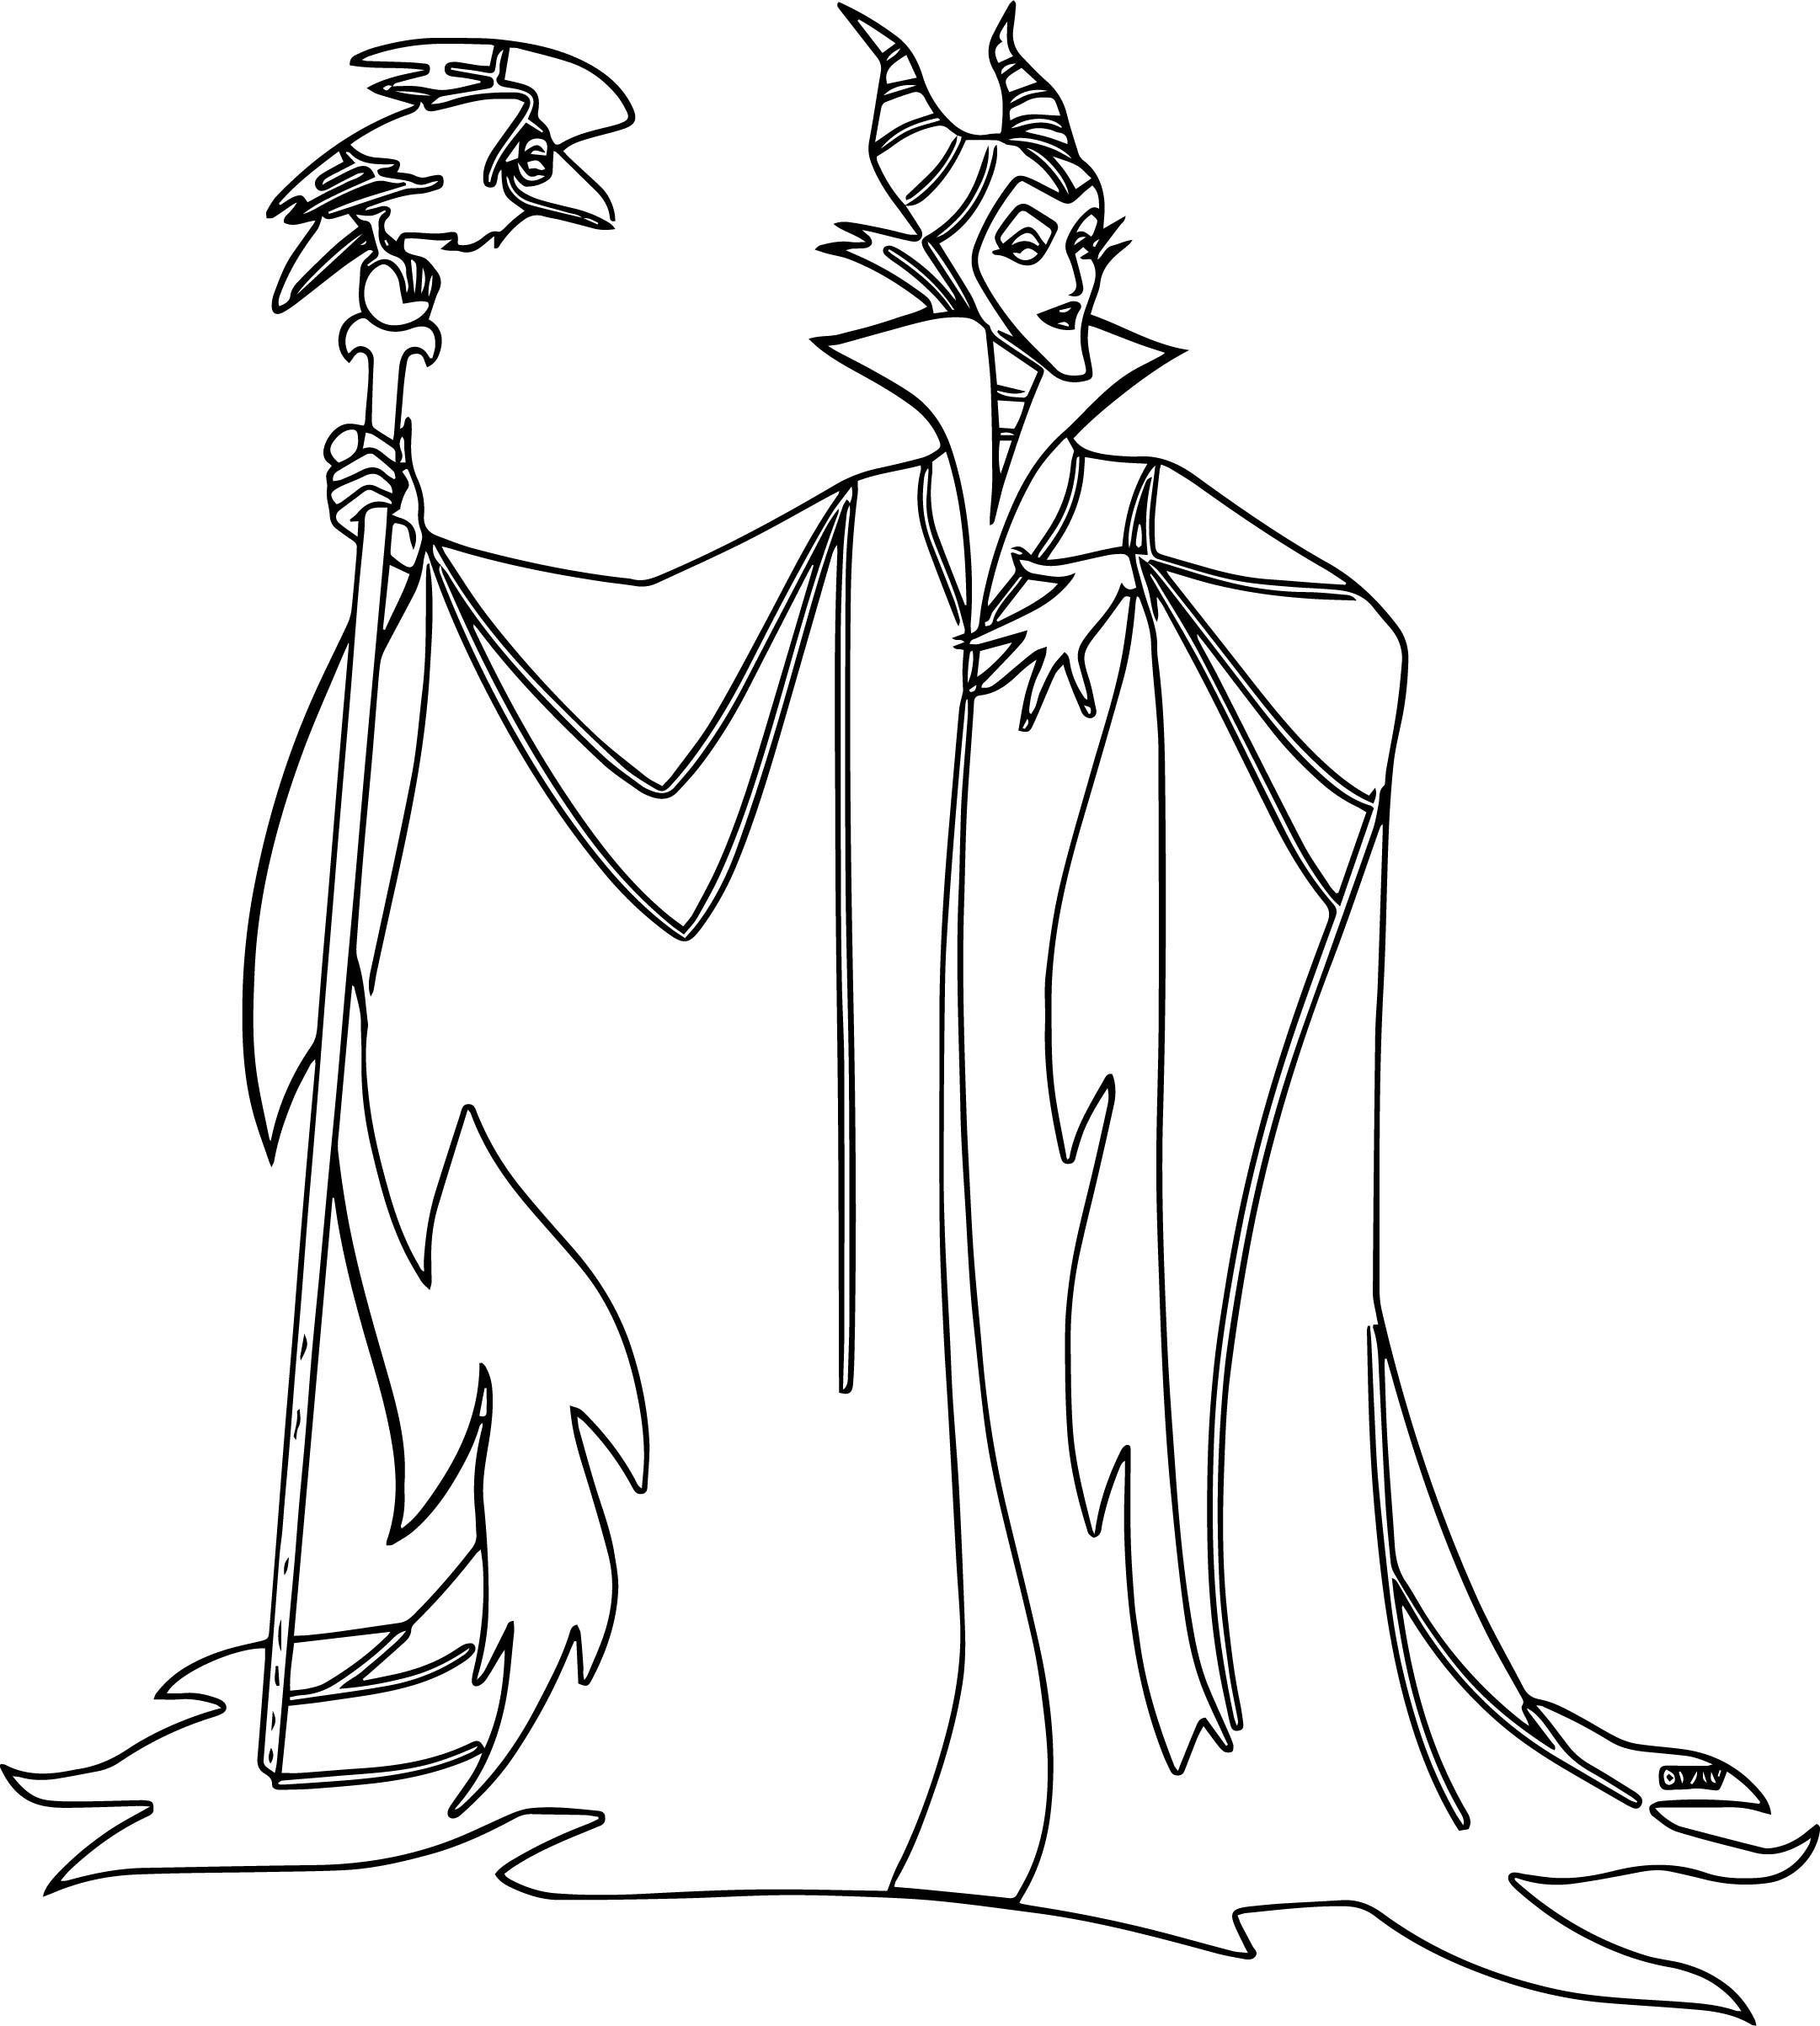 Maleficent Coloring Pages  Maleficent Colouring Pages Page 3 Sketch Coloring Page